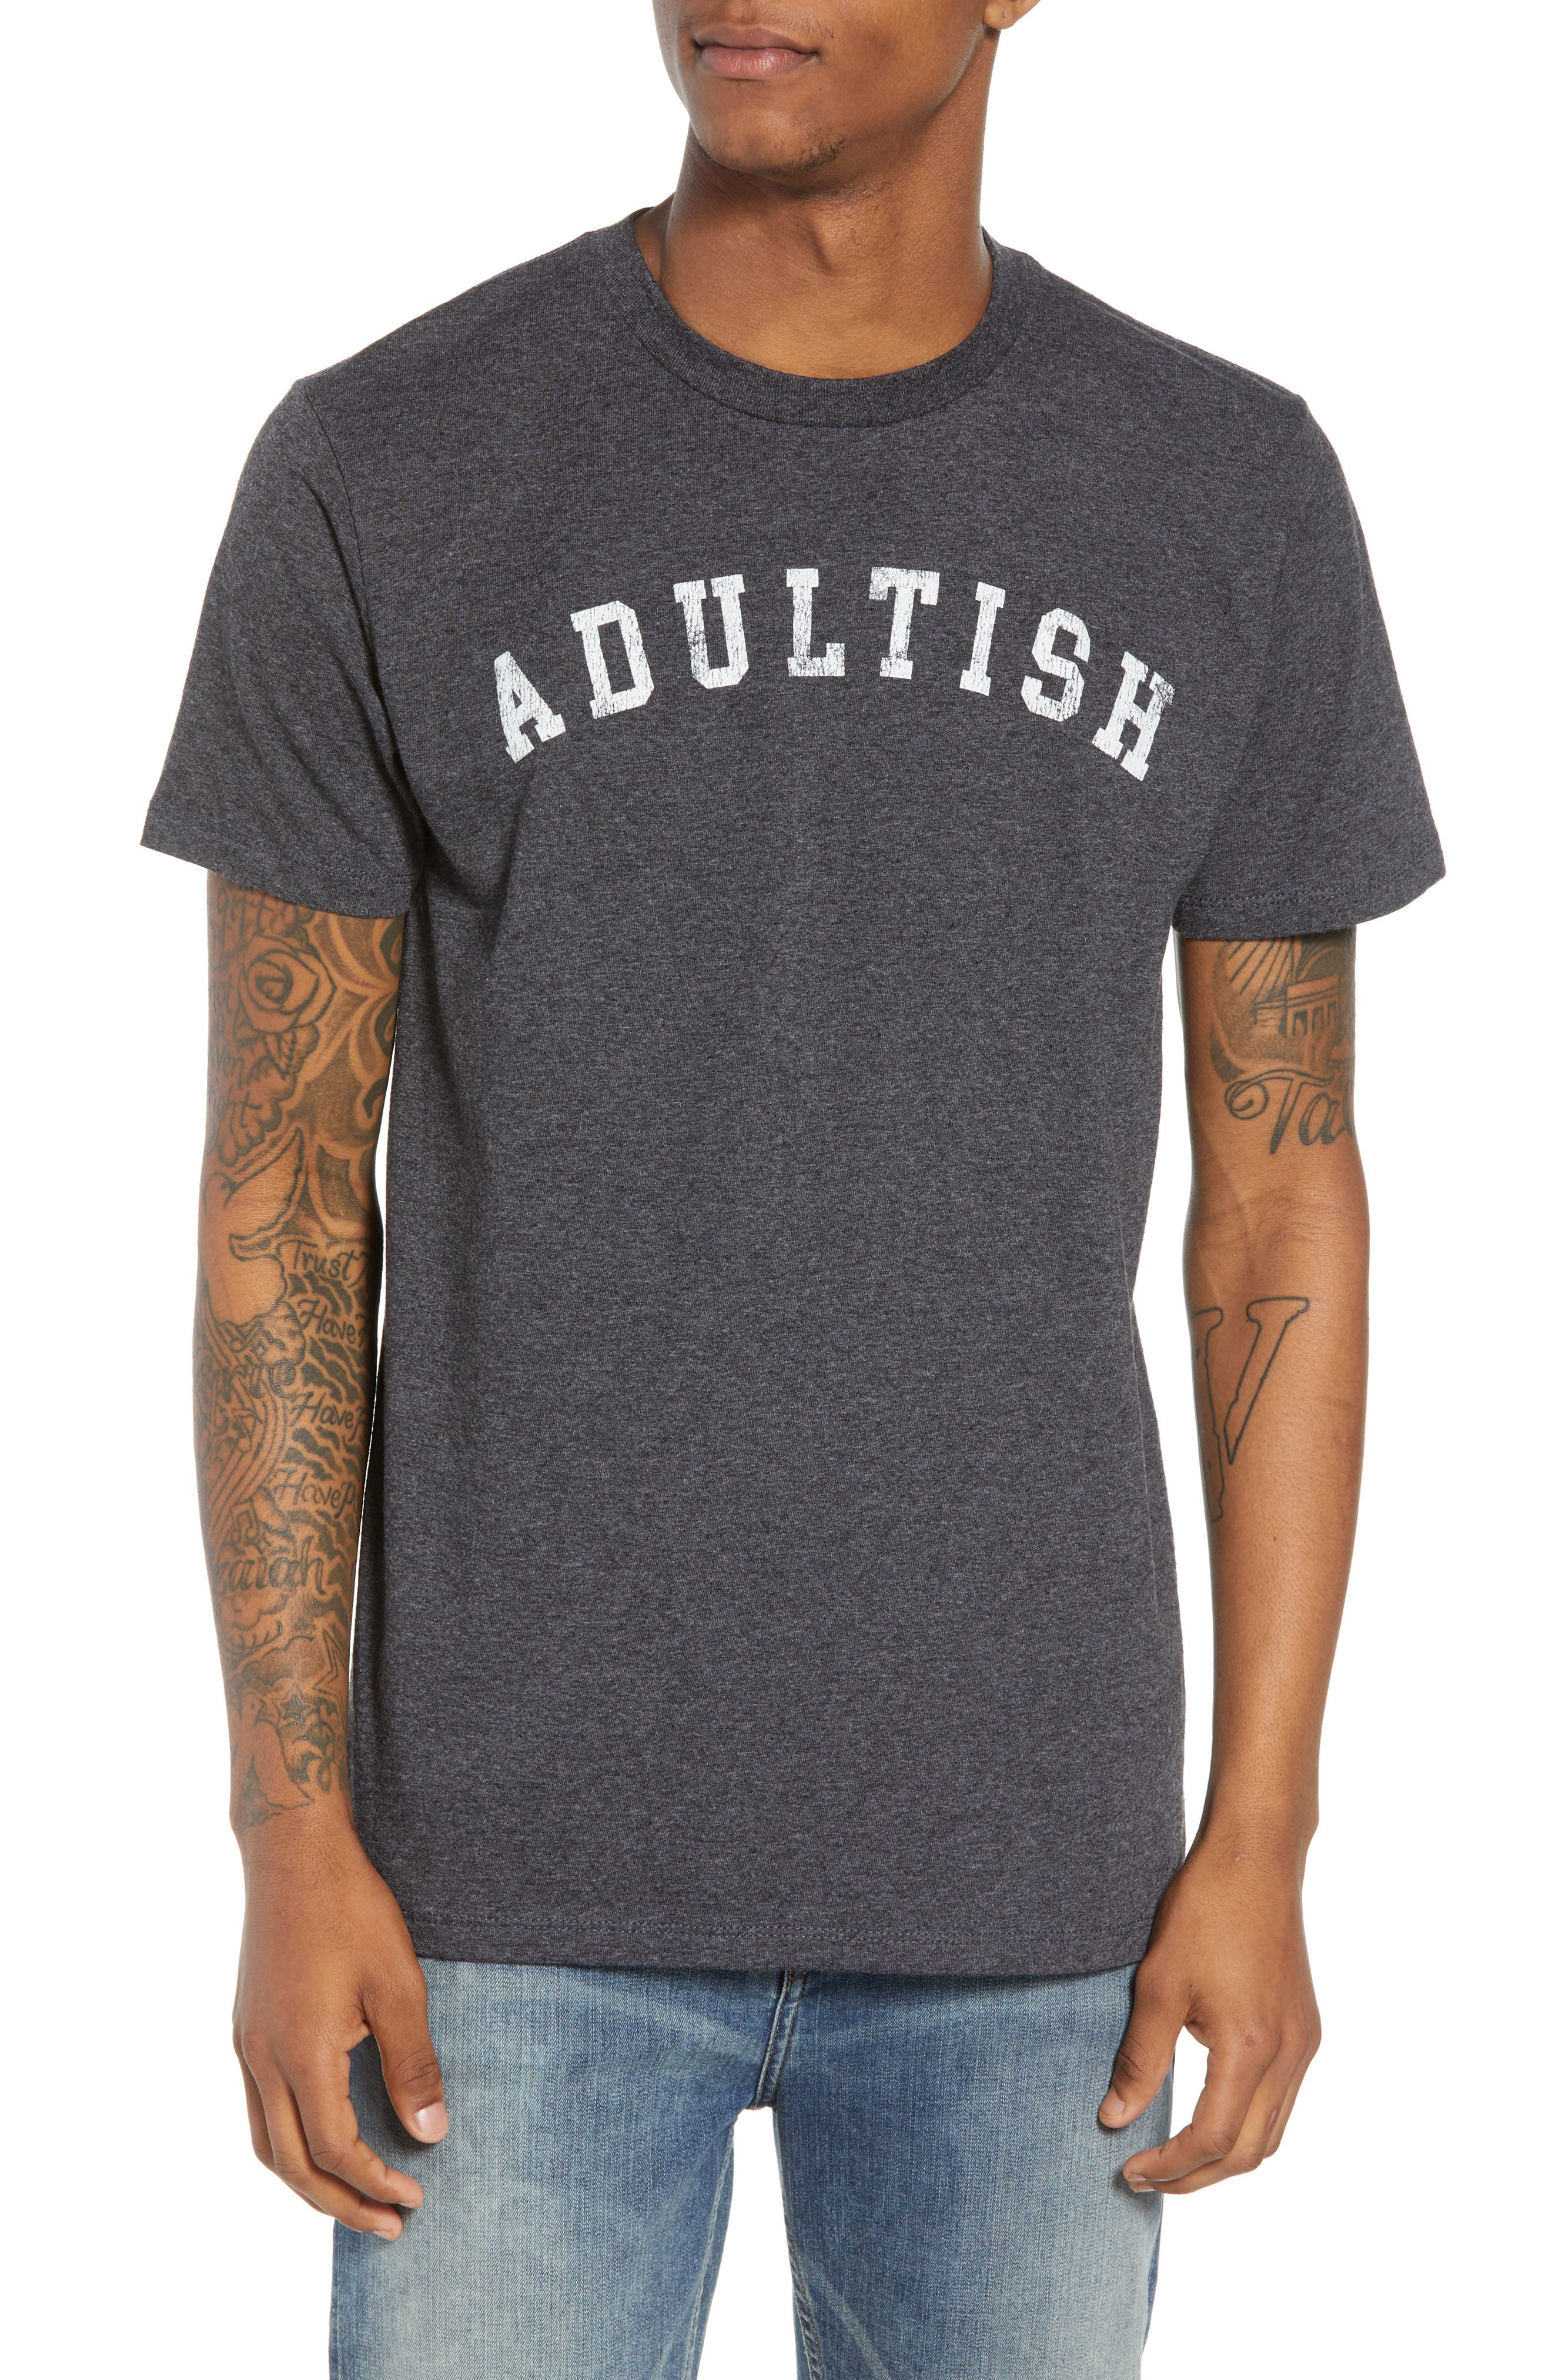 Adultish T-Shirt,                             Main thumbnail 1, color,                             Black Tee Adultish